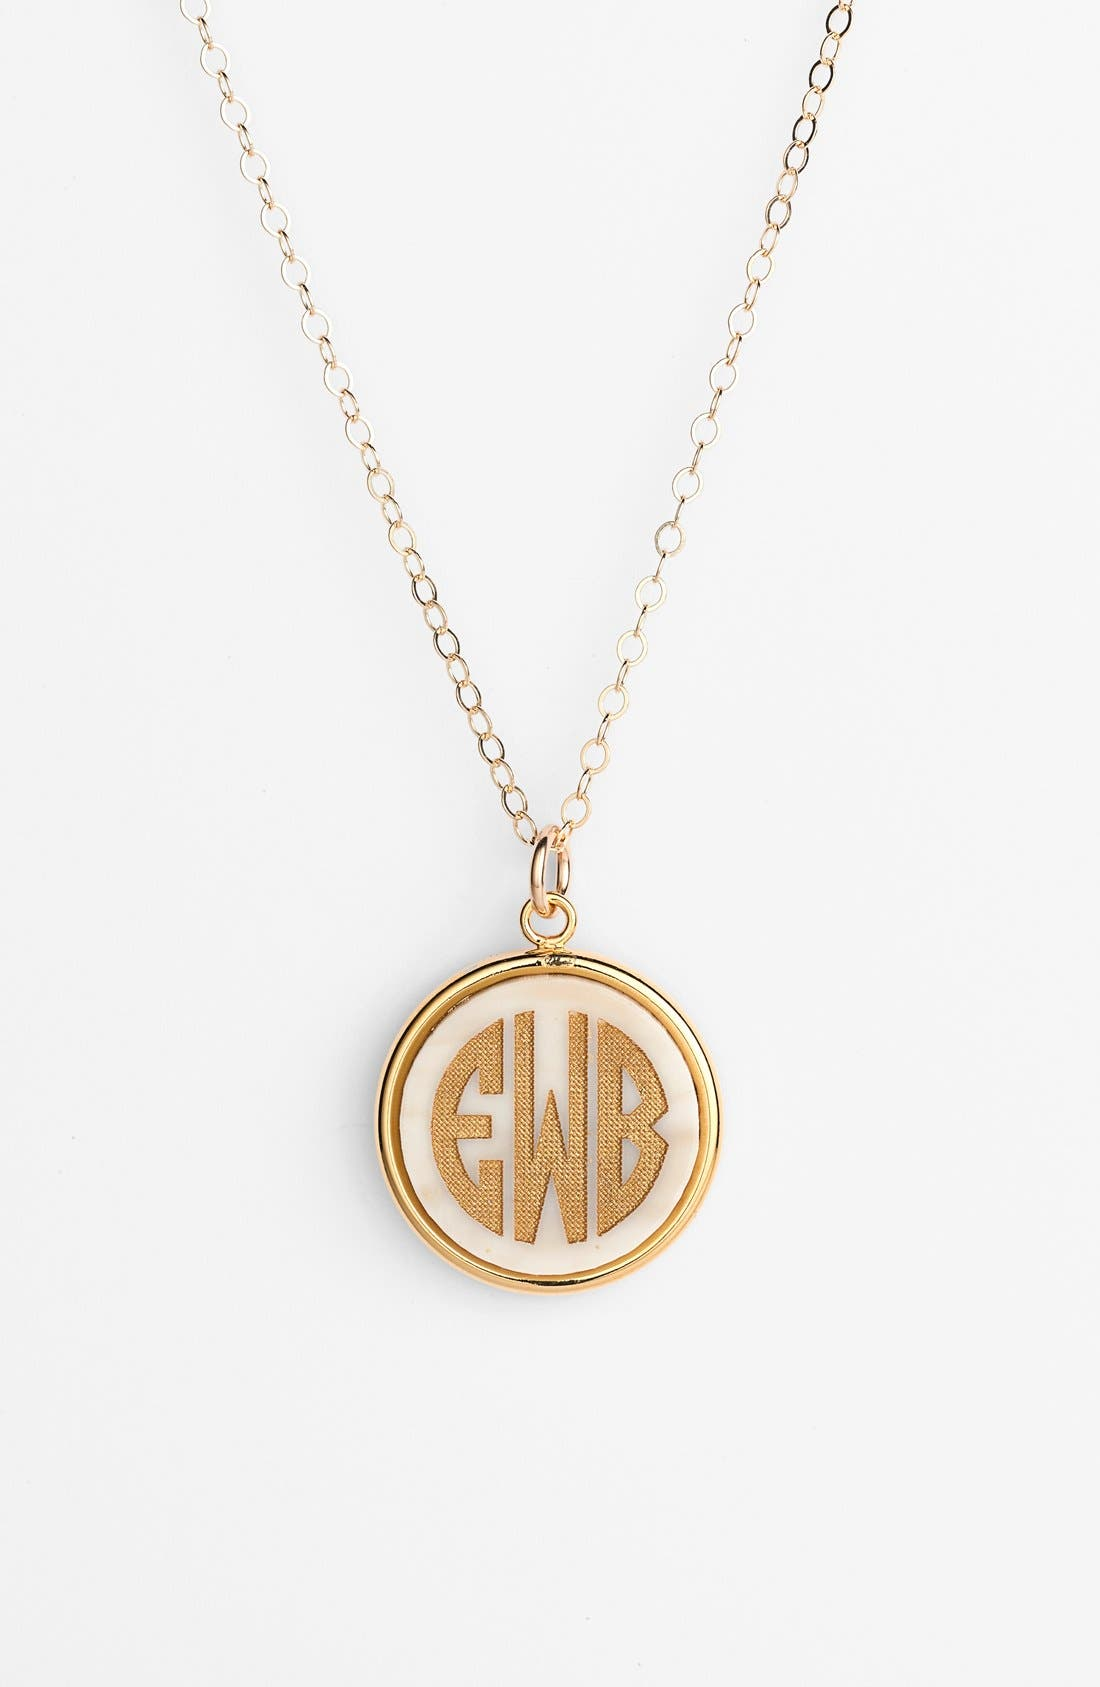 MOON AND LOLA Vineyard Personalized Monogram Pendant Necklace